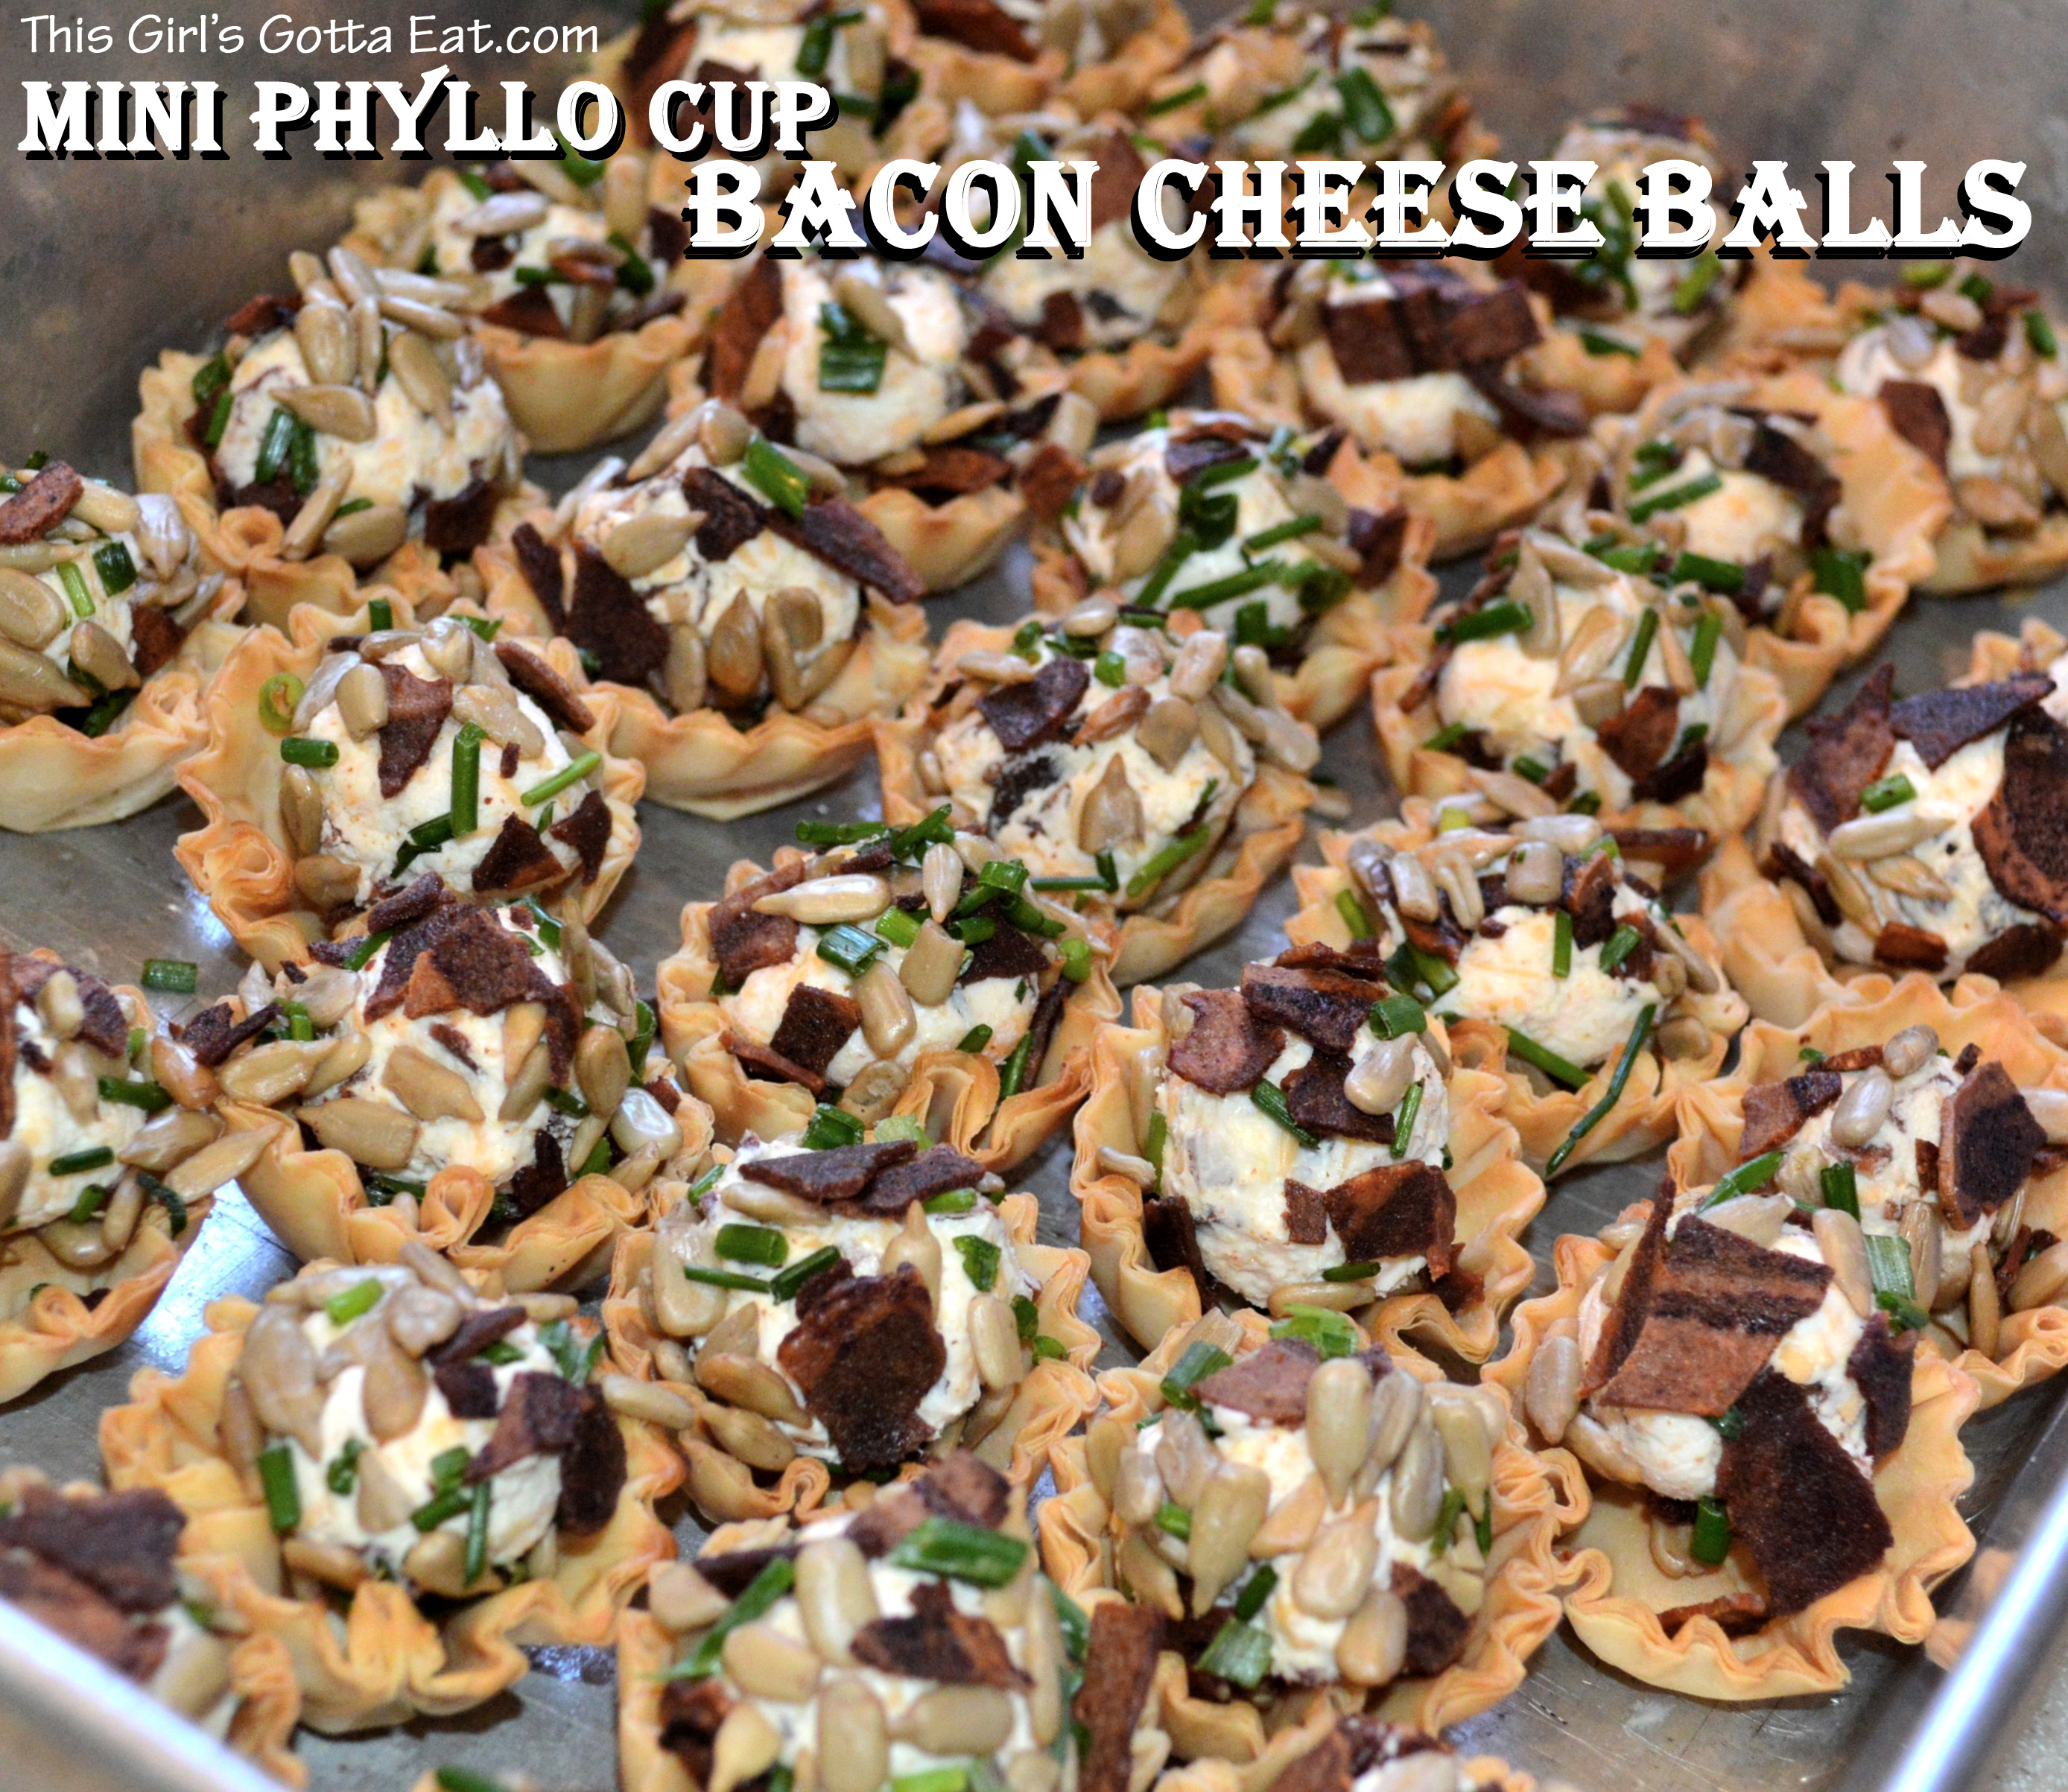 Mini Phyllo Cup Bacon Cheese Balls | This Girl's Gotta Eat!